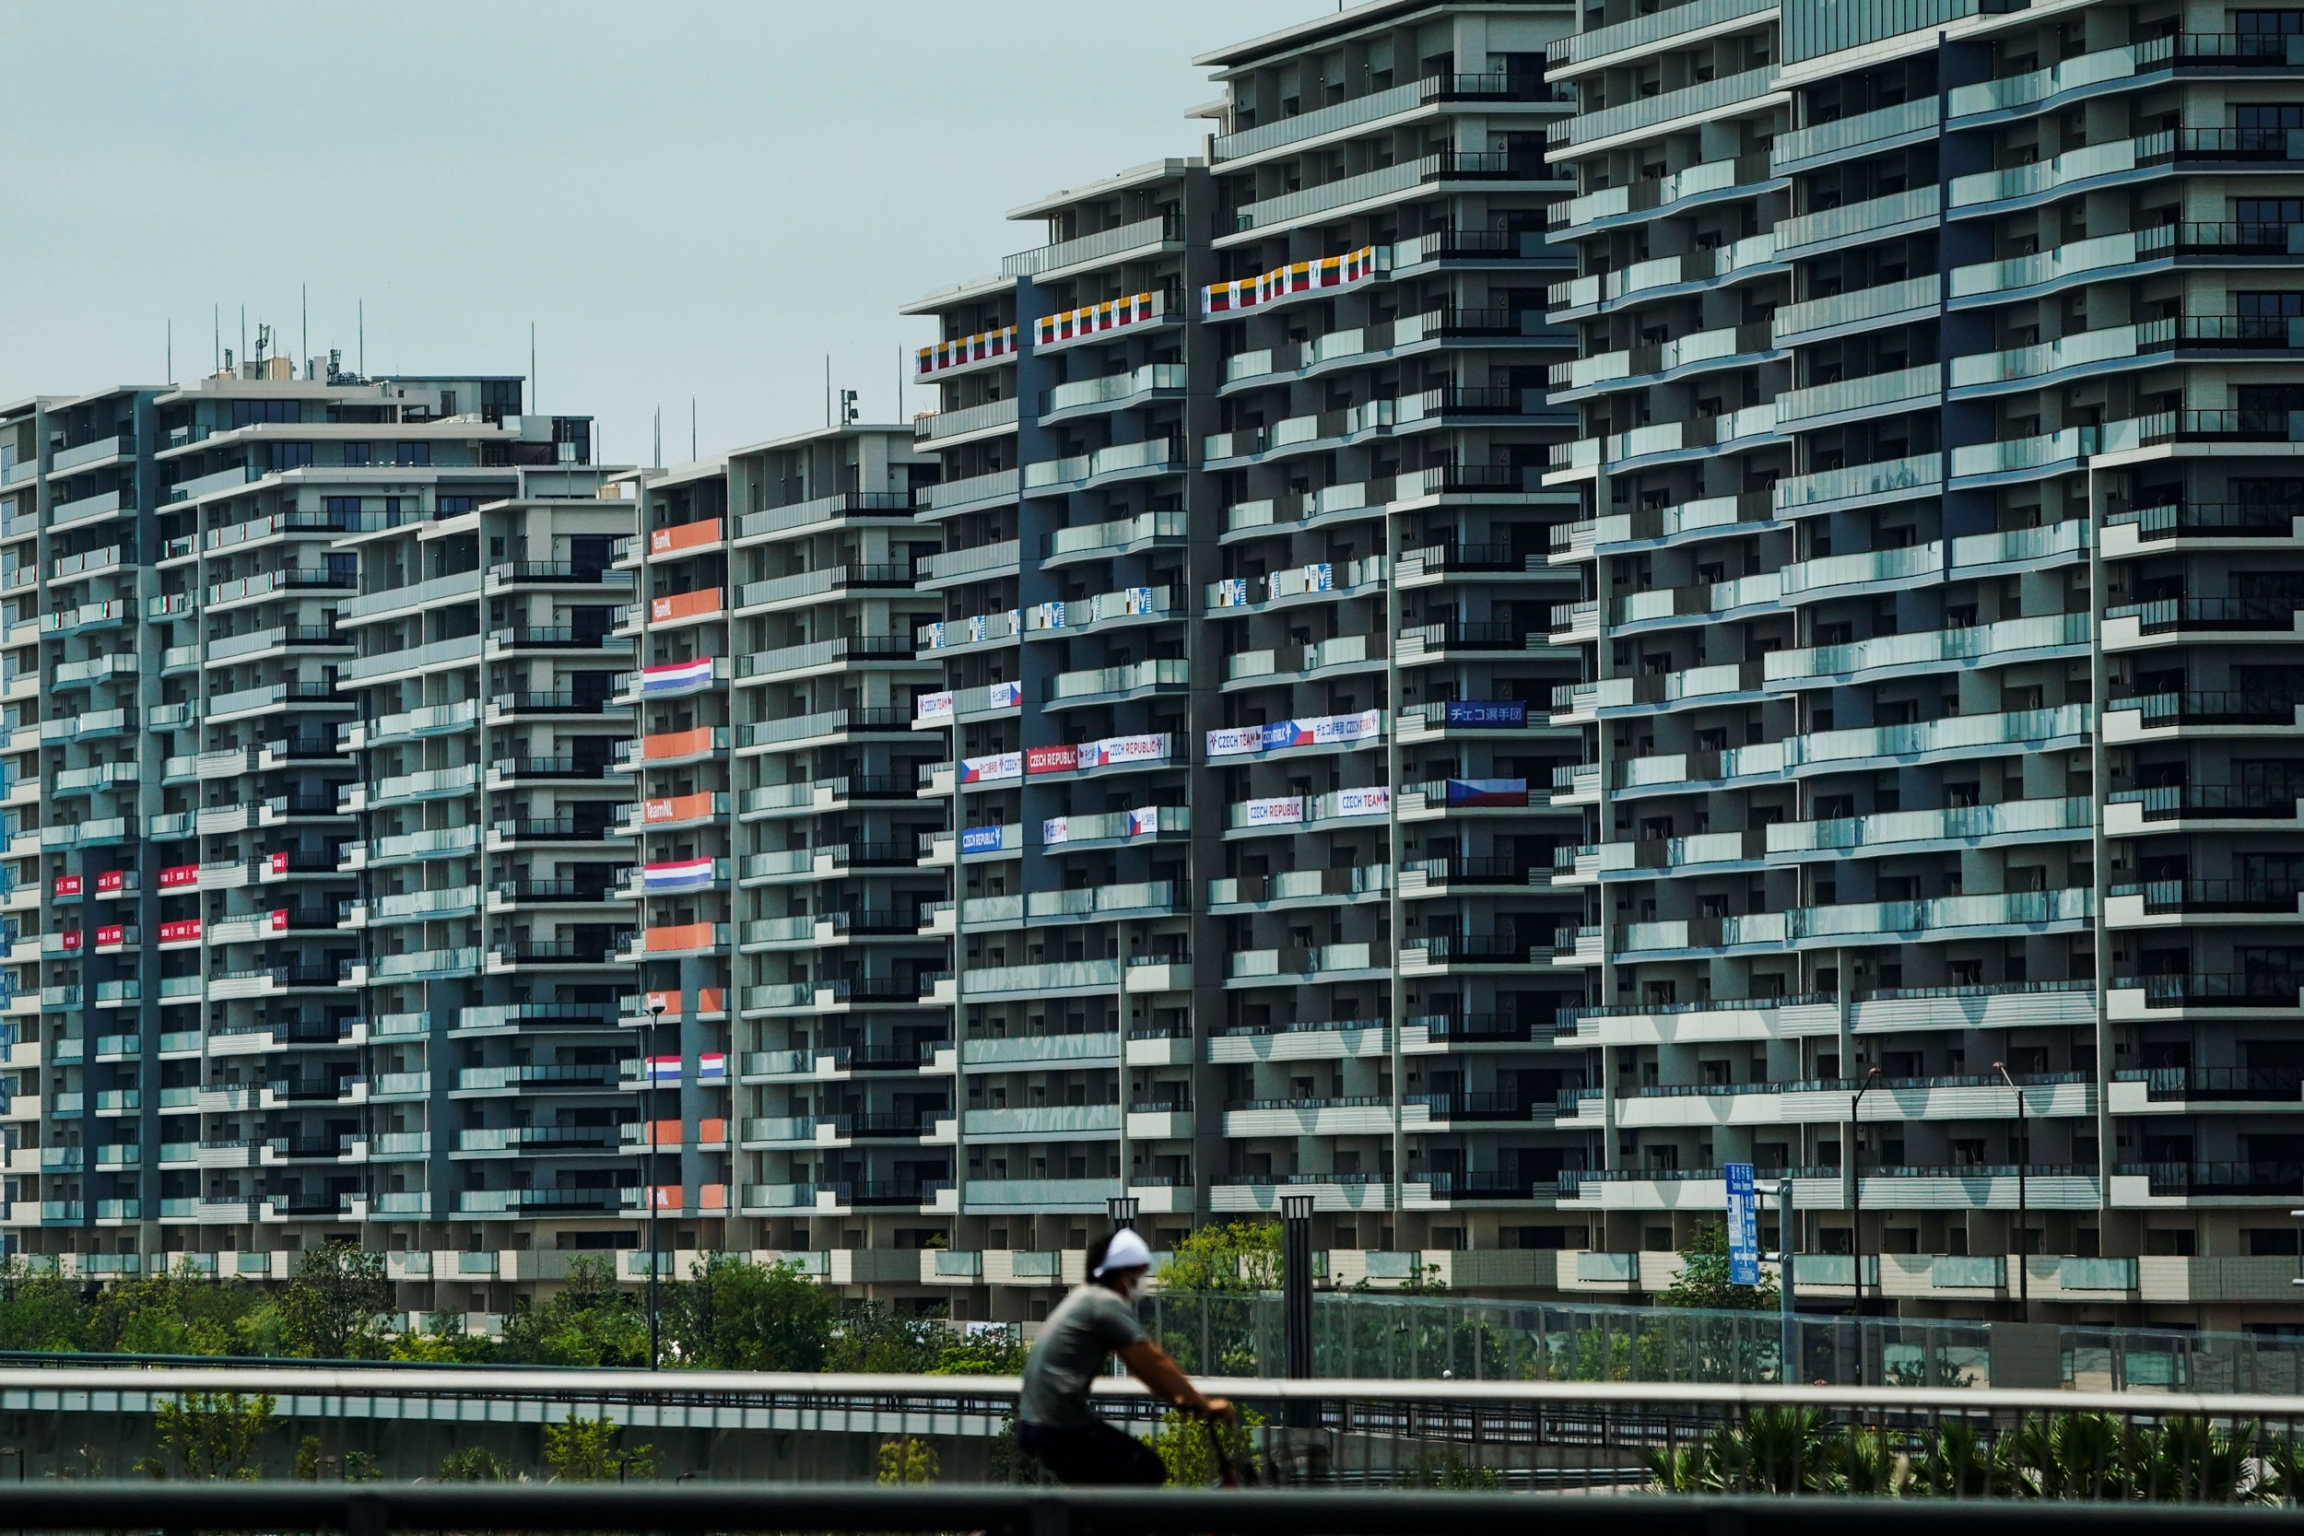 A row of tall buildings are shown, many with national flags hanging from the balconies.